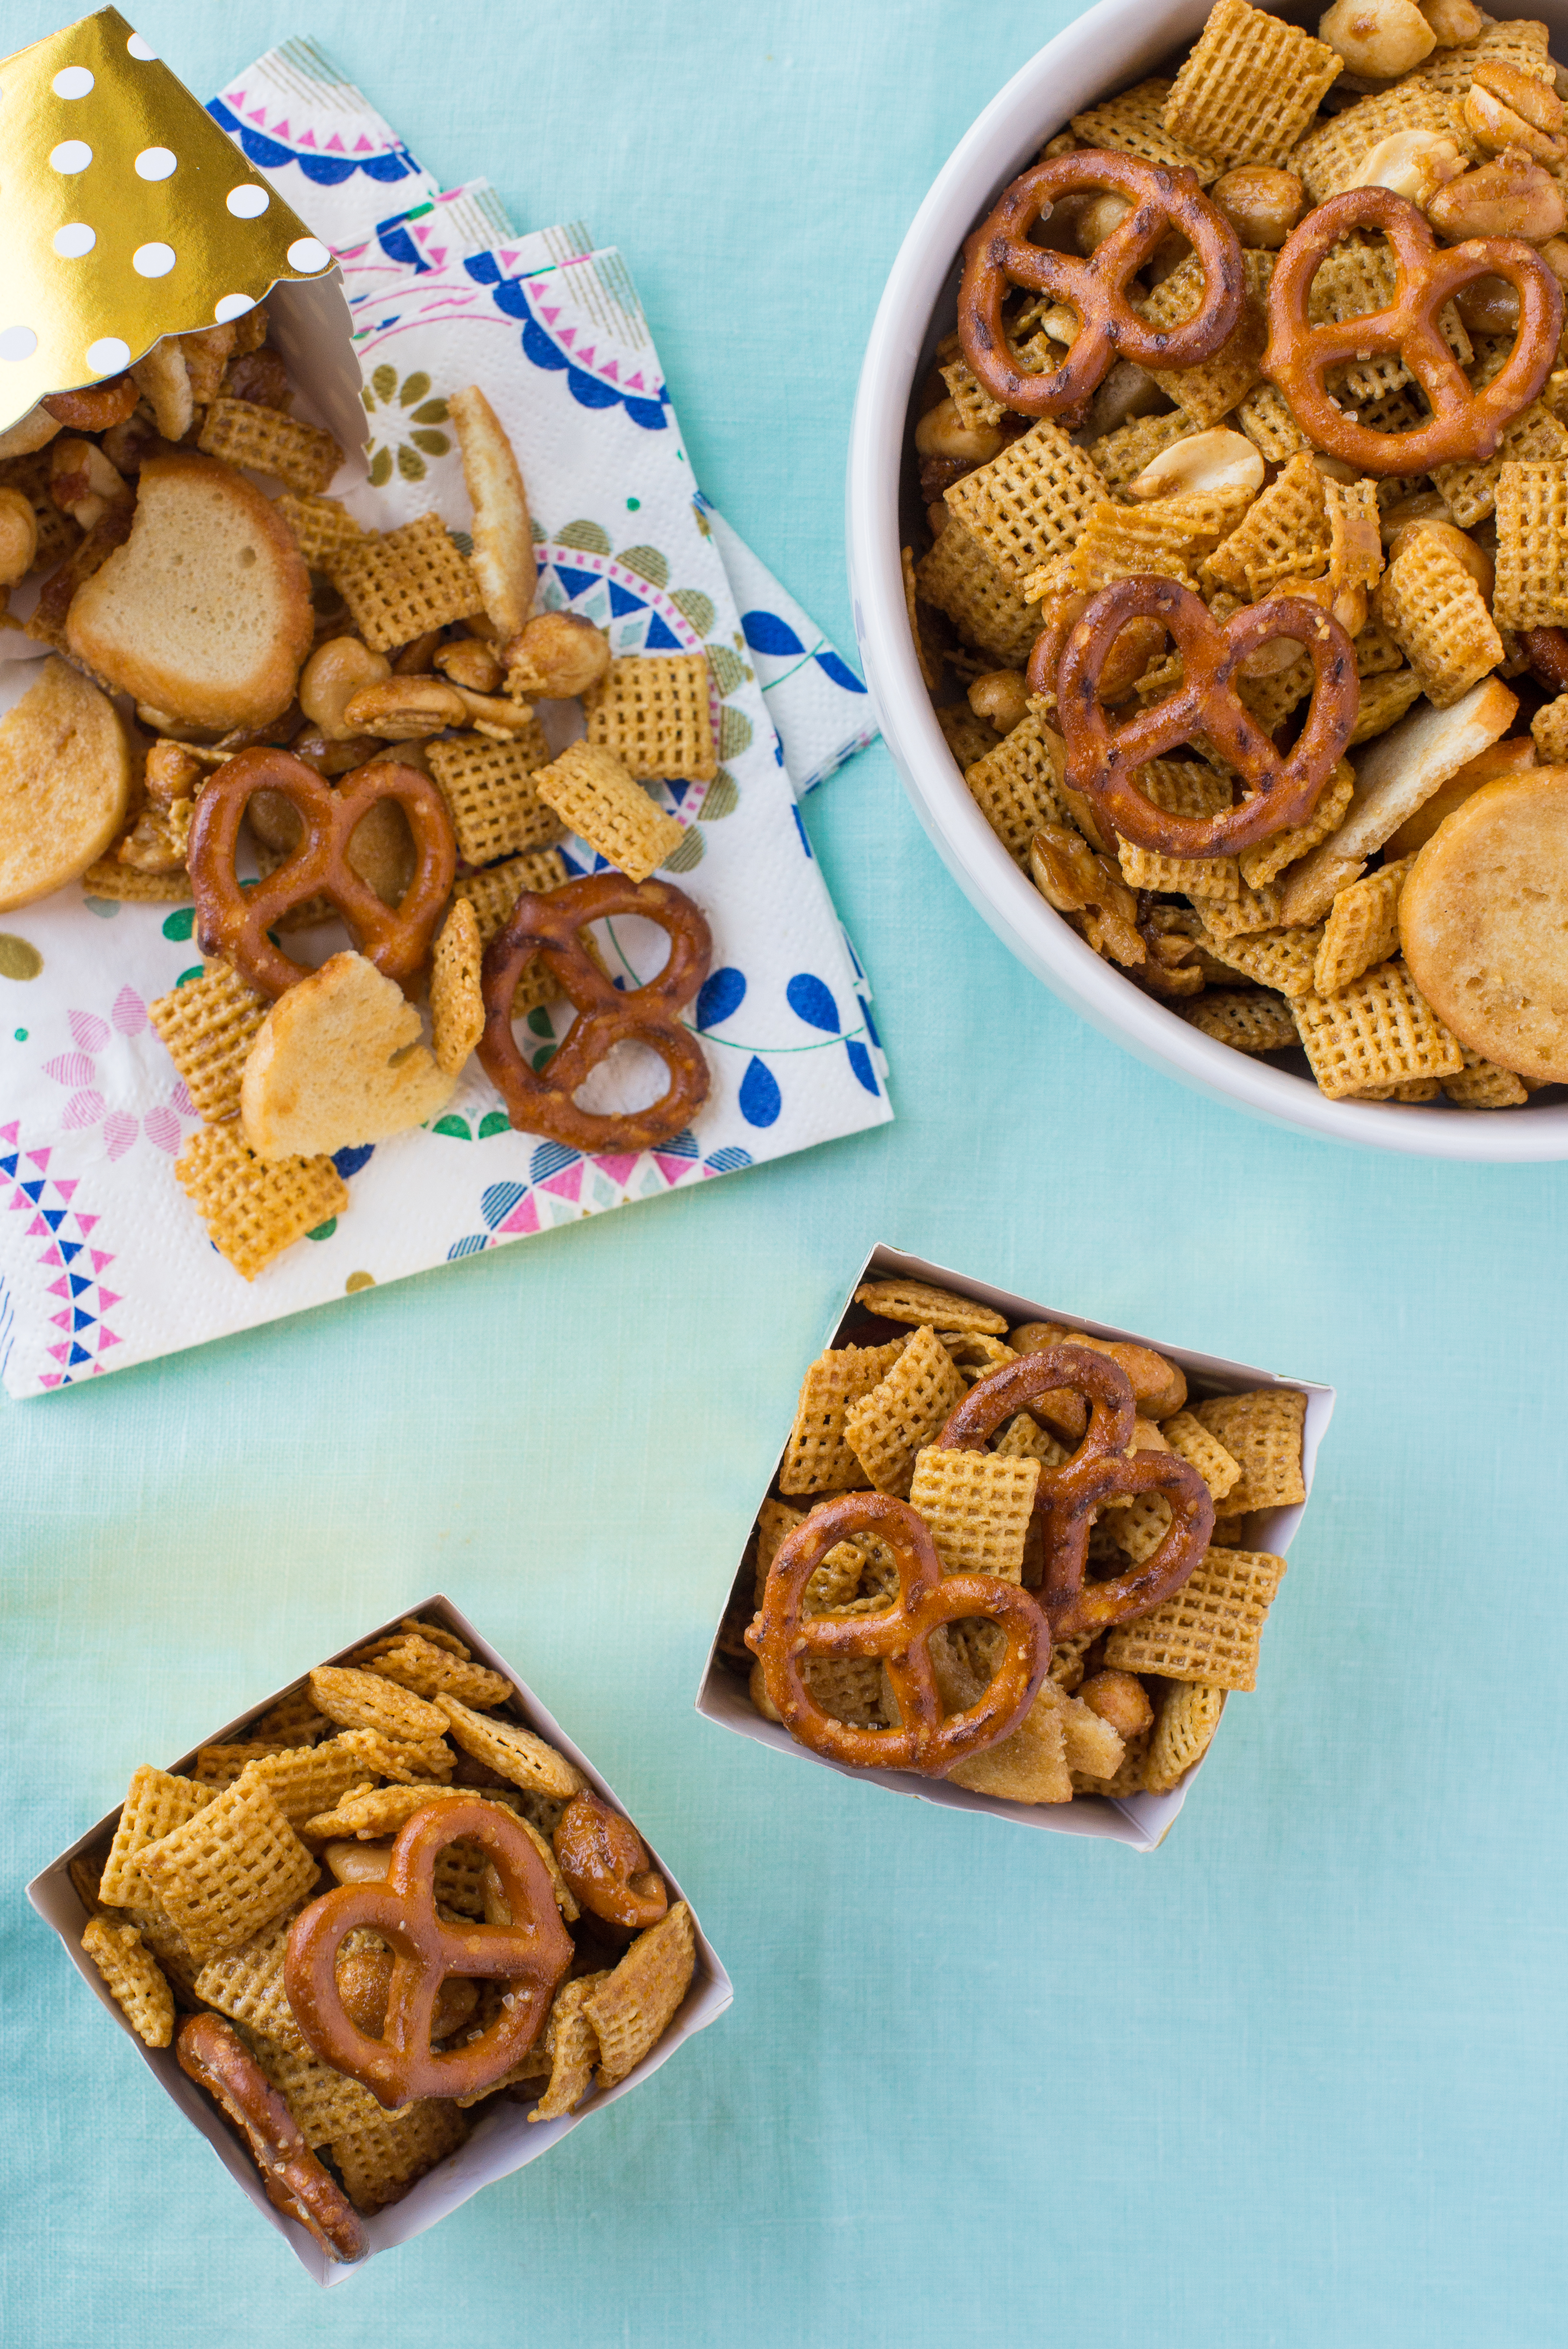 10 Homemade Snacks for Traveling with Kids | Kitchn